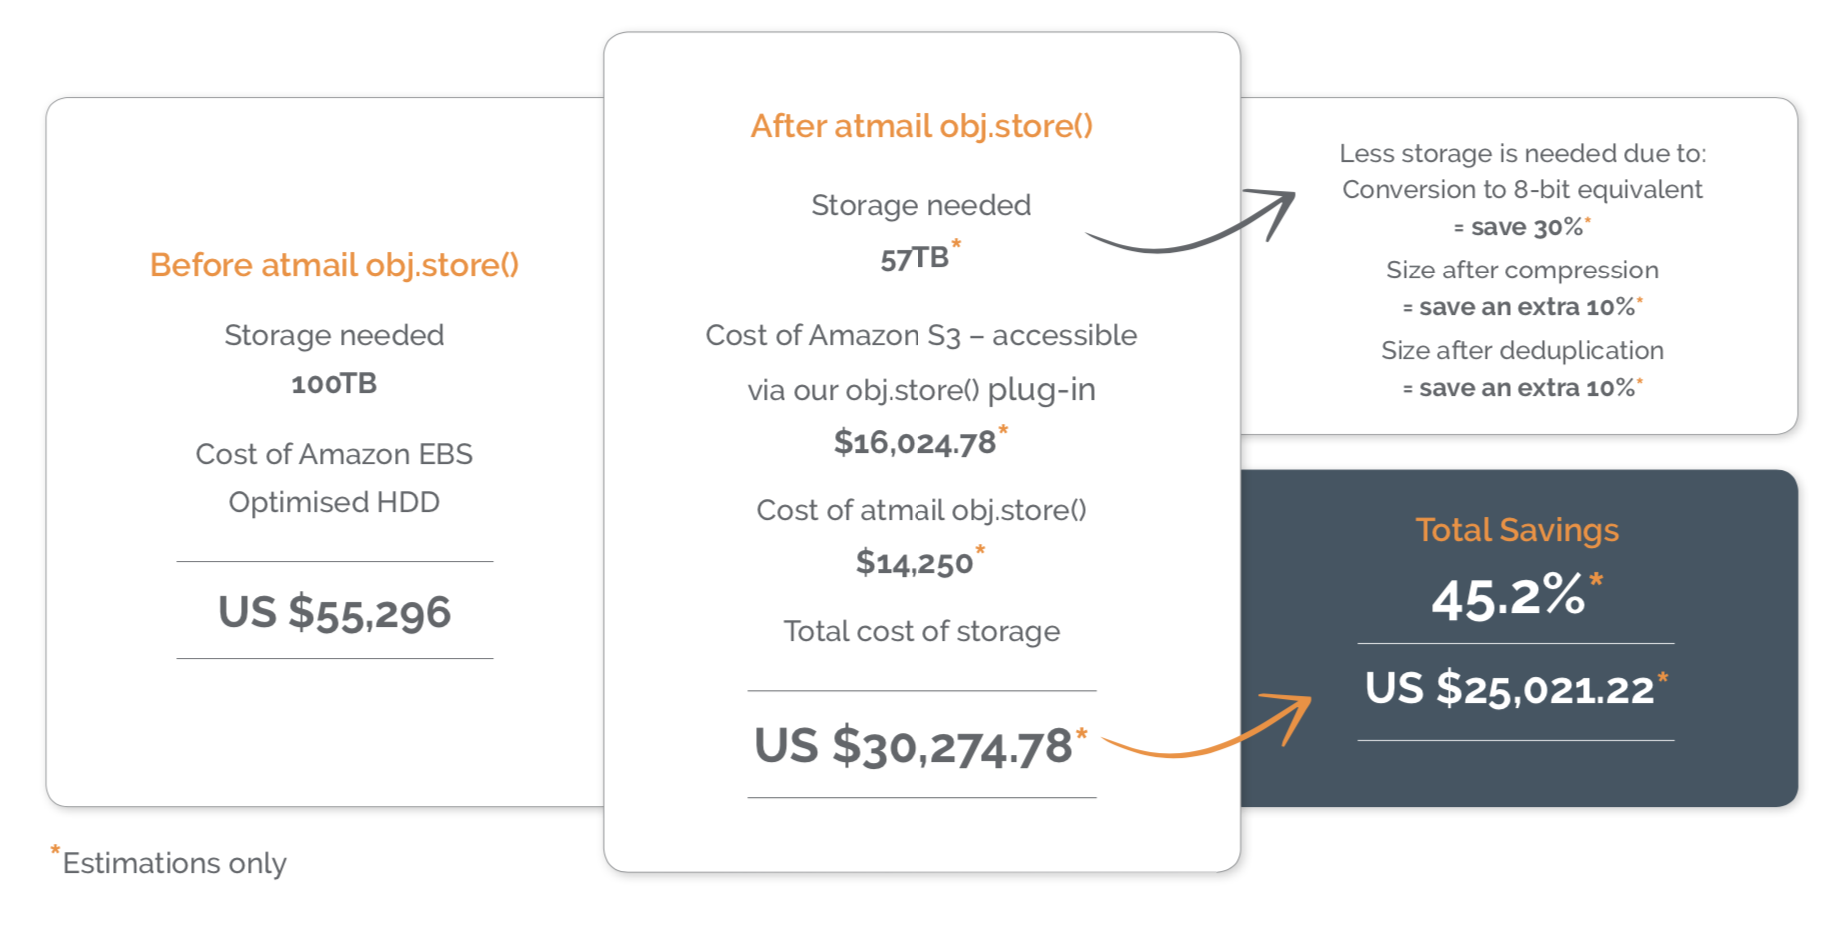 Cost savings example - object storage - atmail obj.store()